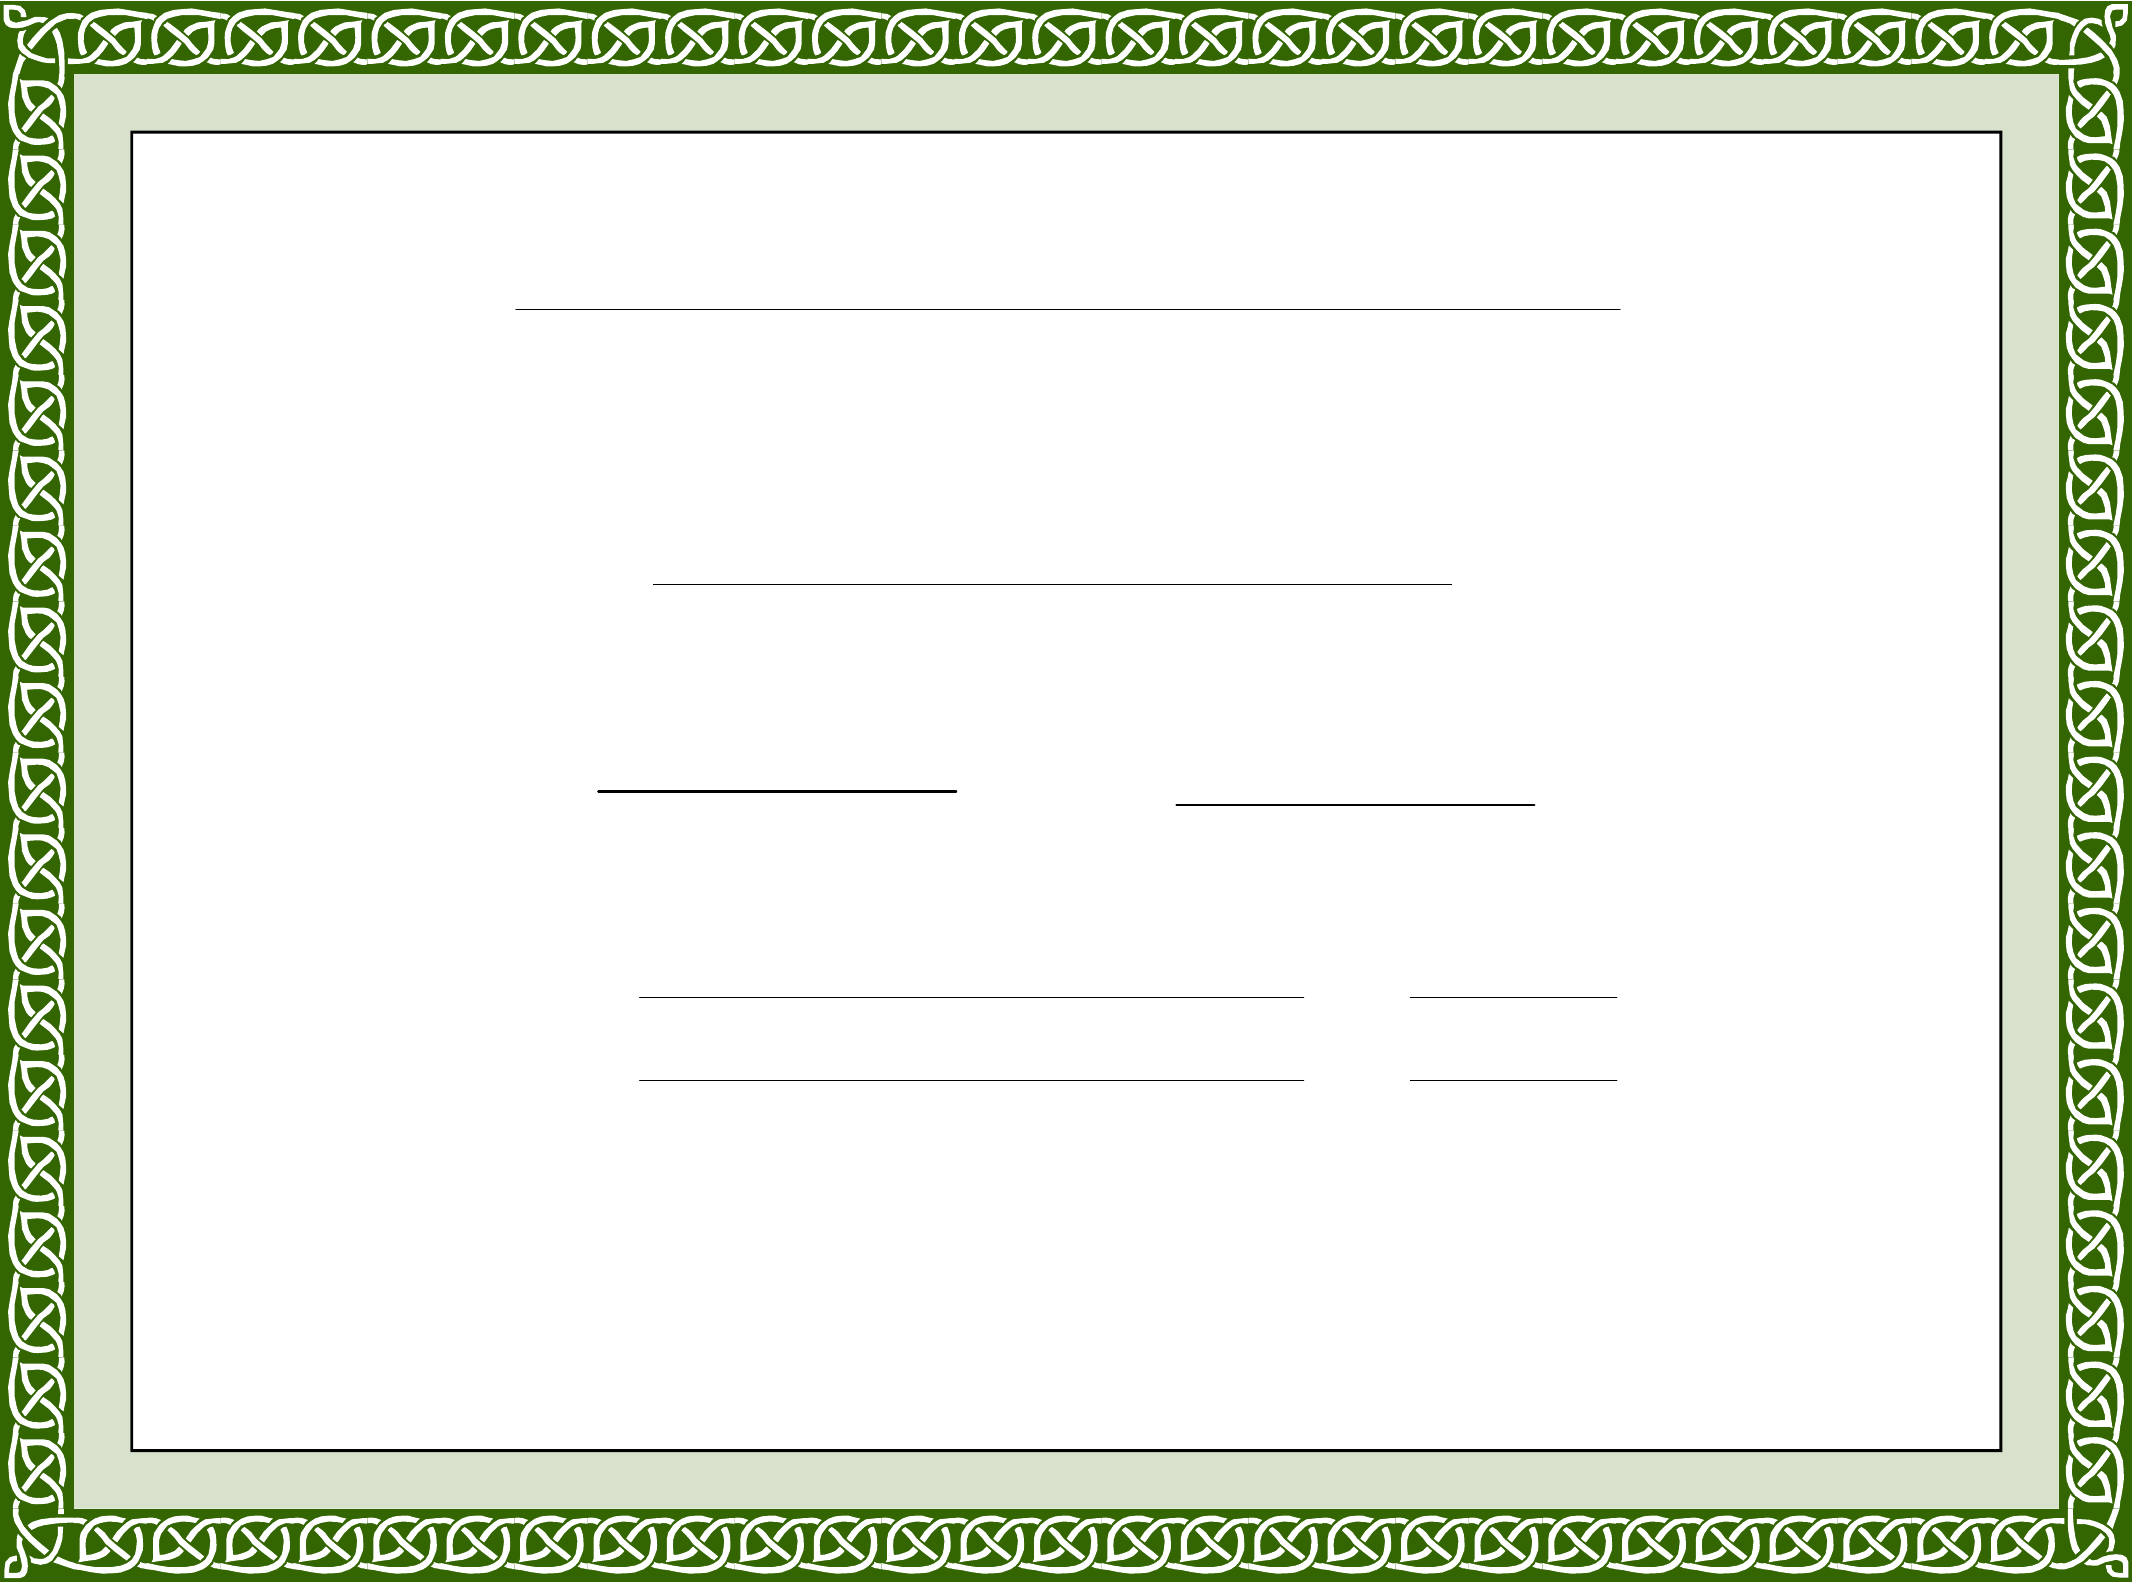 certificate of completion templates free download - Boat.jeremyeaton.co